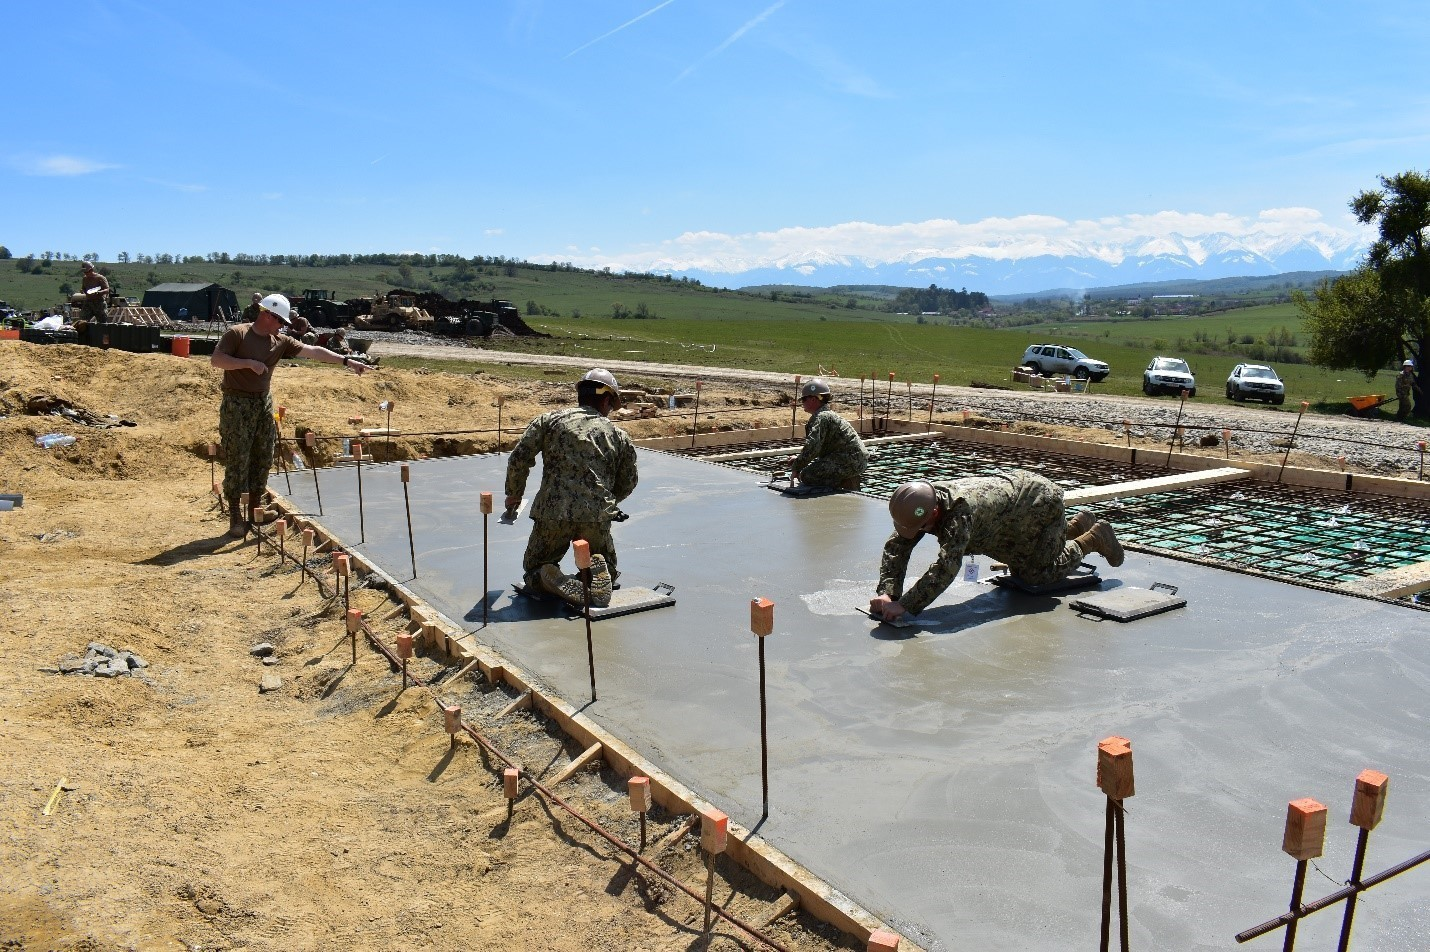 Senior Chief Joseph G. Daniel directs Builder 3rd Class Hector Juarez, Builder 3rd Class Samantha Kylberg, and Builder 3rd Class Alexis Franklin of the Naval Mobile Construction Battalion 1 as they level the concrete floor for an Operations and Storage Building as a part of Resolute Castle 17 at Joint National Training Center, Cincu, Romania.  Resolute Castle 17 is an exercise strengthening the NATO alliance and enhancing its capacity for joint training and response to threats within the region.